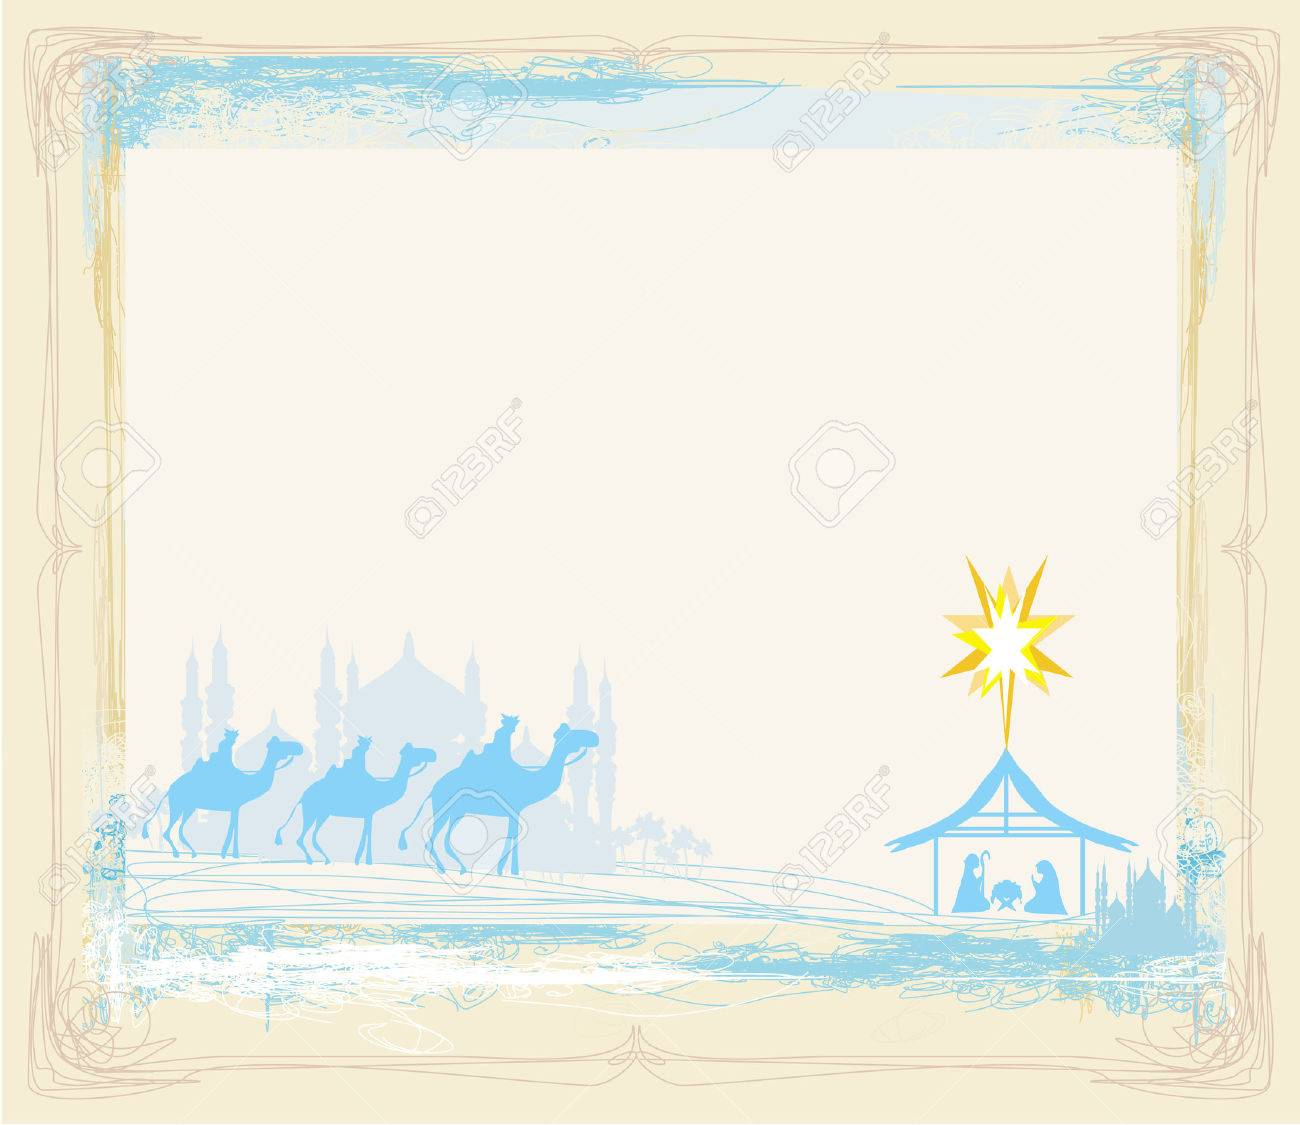 grunge frame with traditional Christian Christmas Nativity scene with the three wise men - 22269606